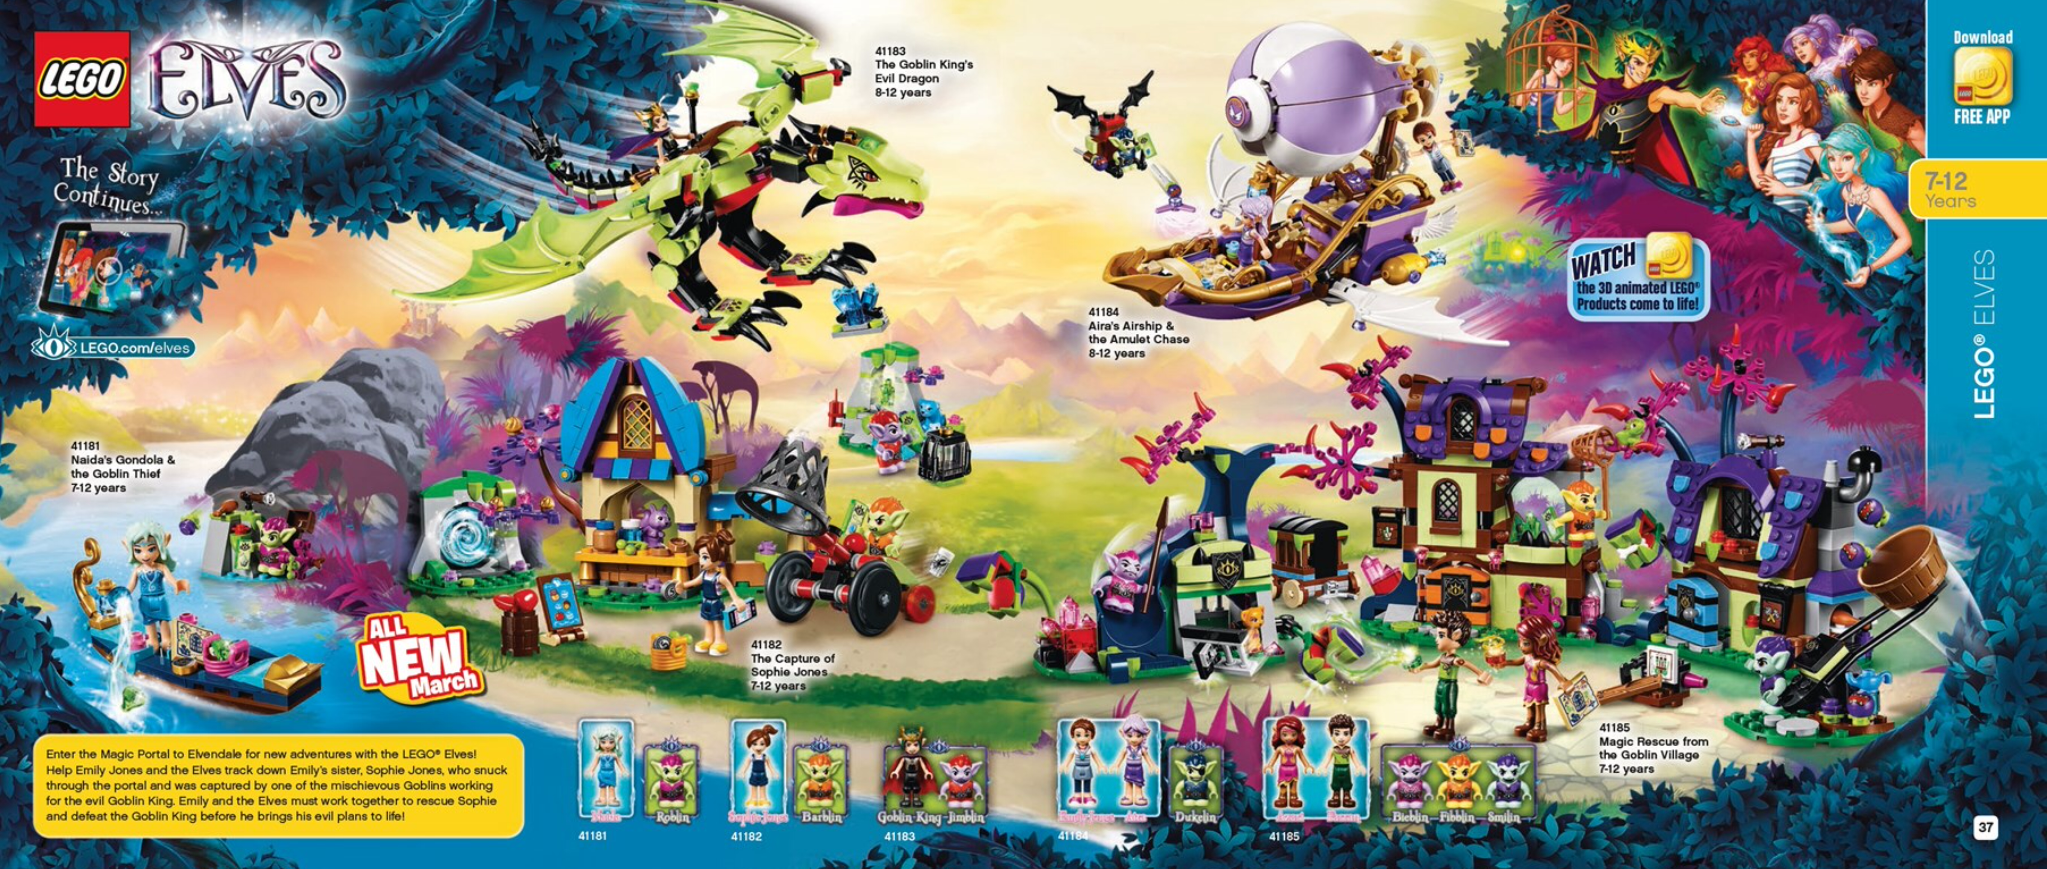 Australian Lego Release Dates First Half Of 2017 Sets January